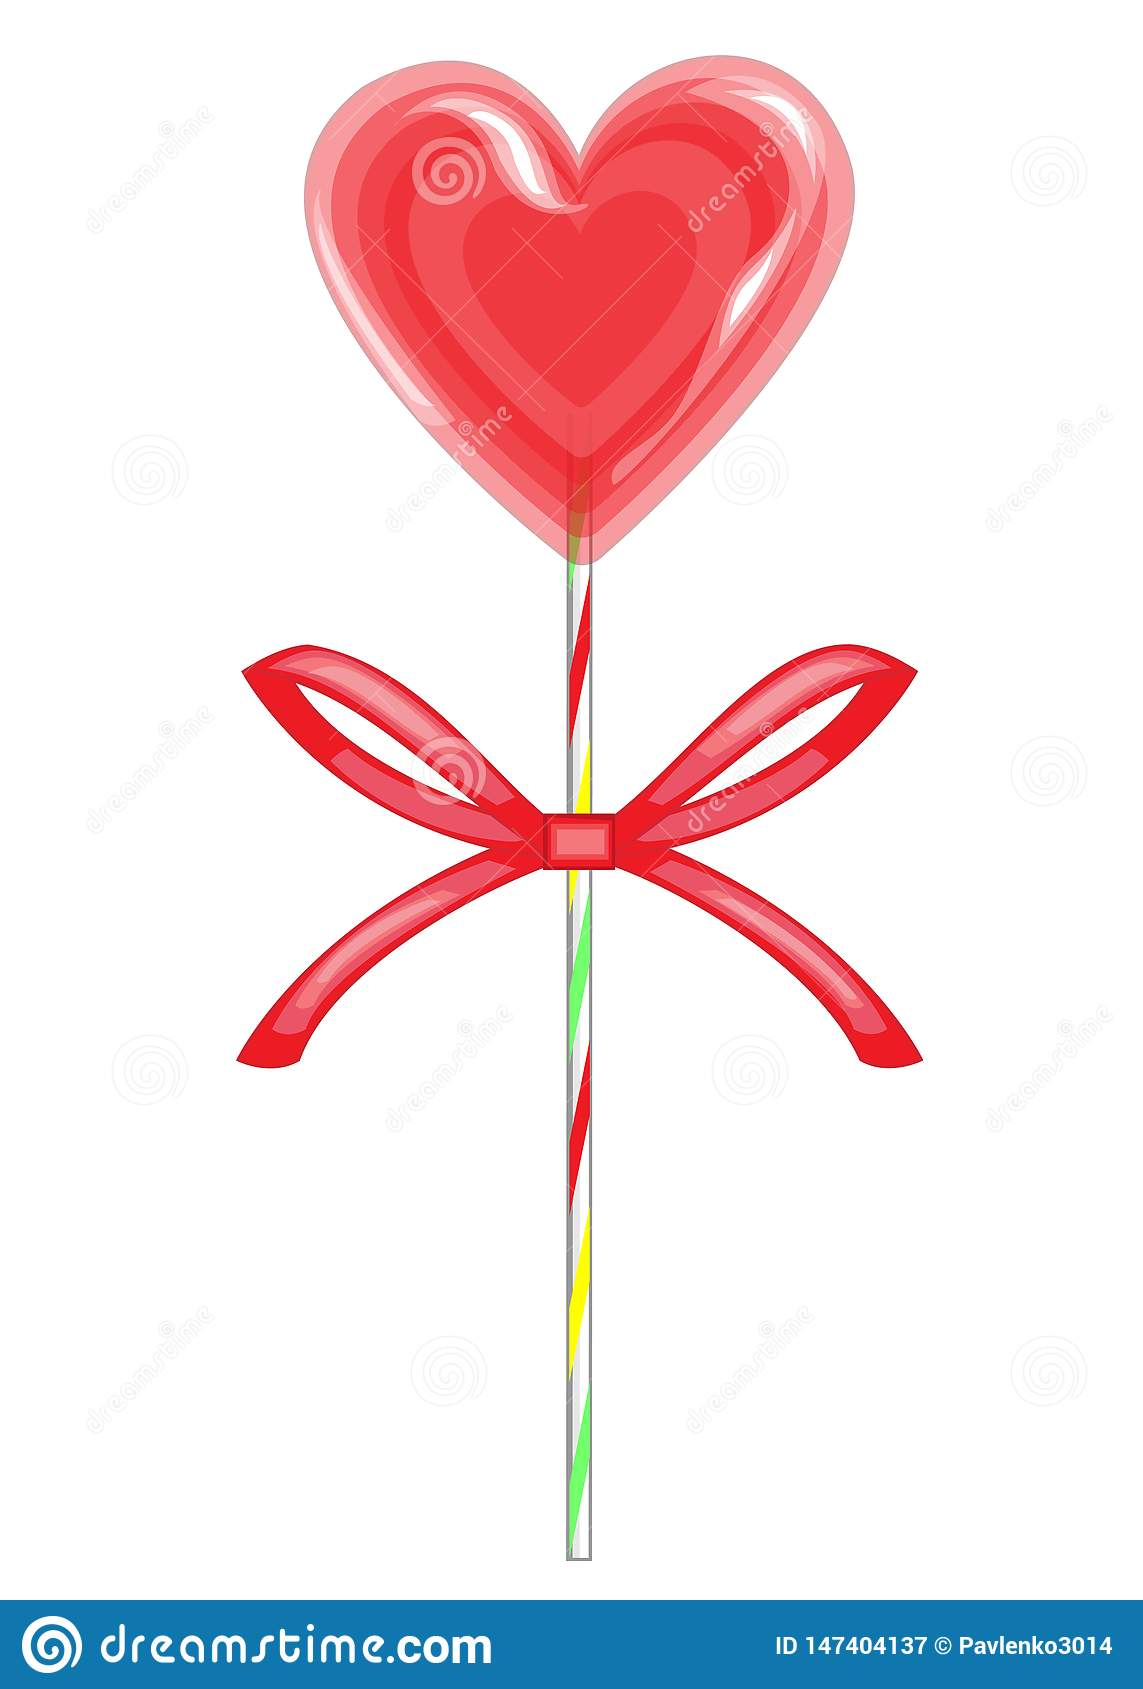 Sweet treat on a stick. Red candy in the shape of heart bandaged with ribbon. Valentine s gift for St. Valentine s Day. Vector